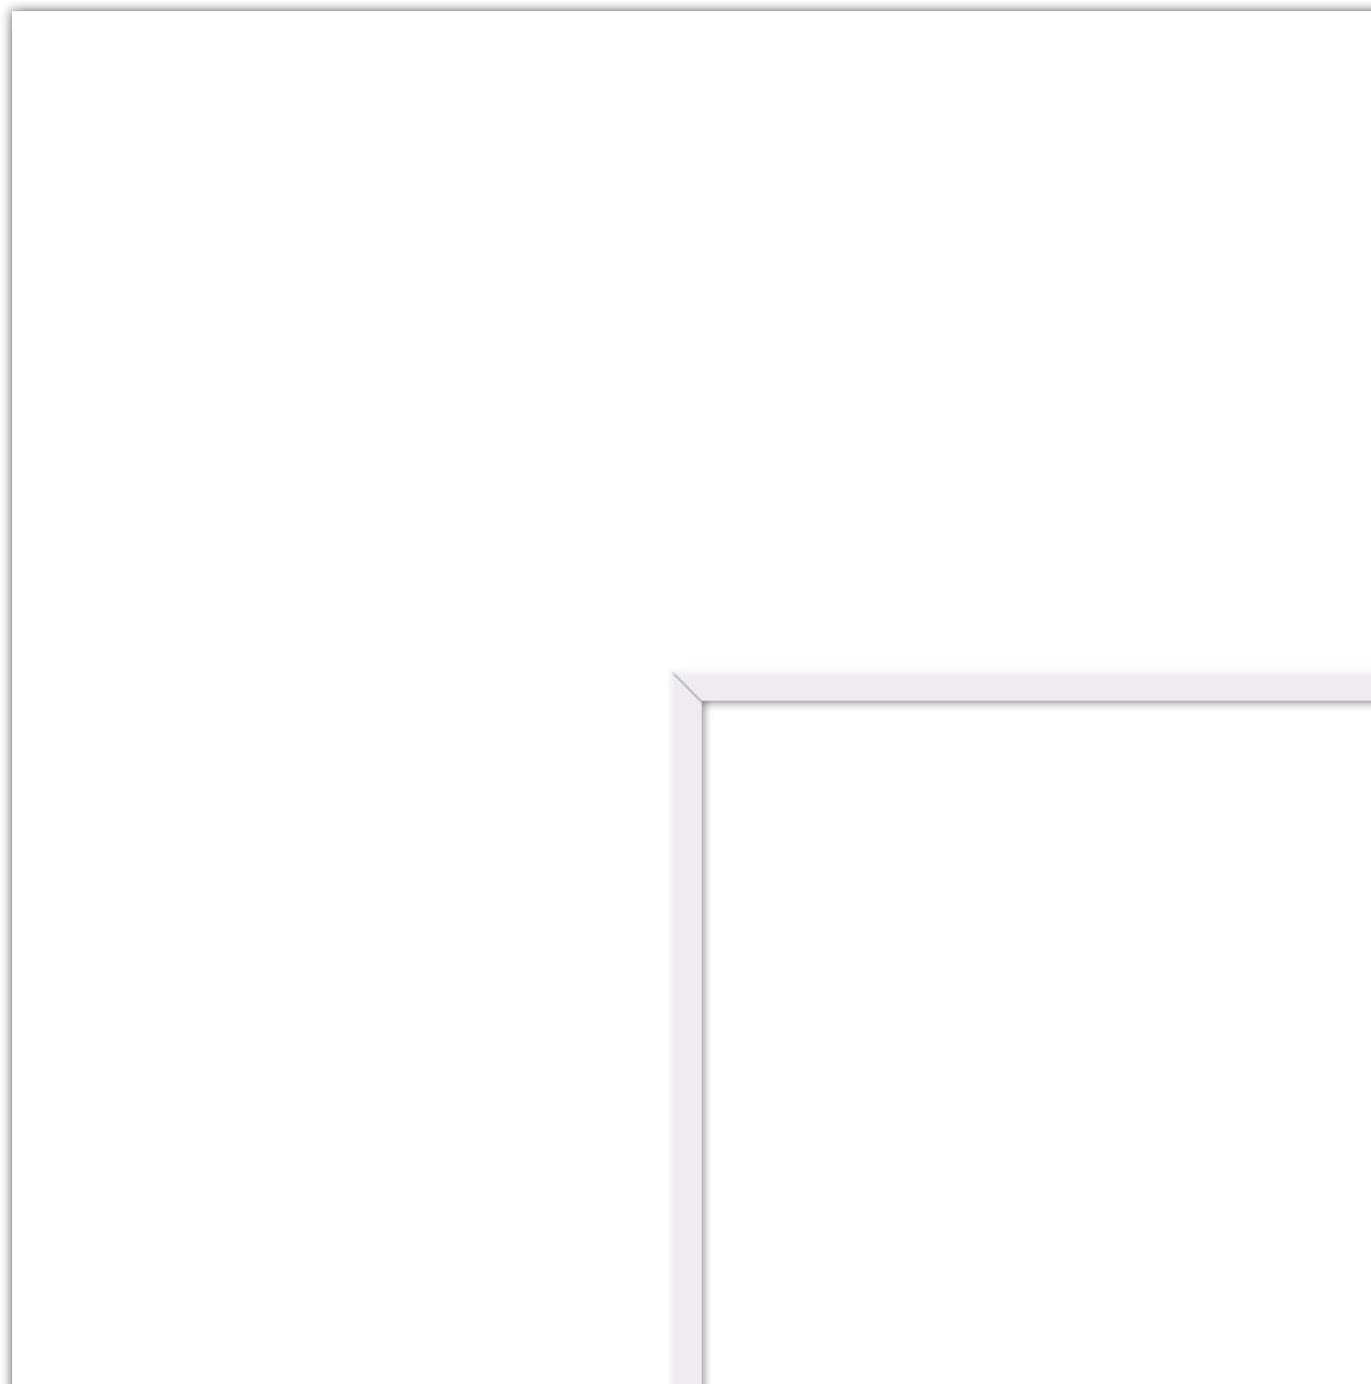 Mat Board Center, Pack of 20, 13x16 for 9x12 White Photo Picture Mats - Acid Free, 4-ply Thickness, White Core - for Pictures, Photos, Framing